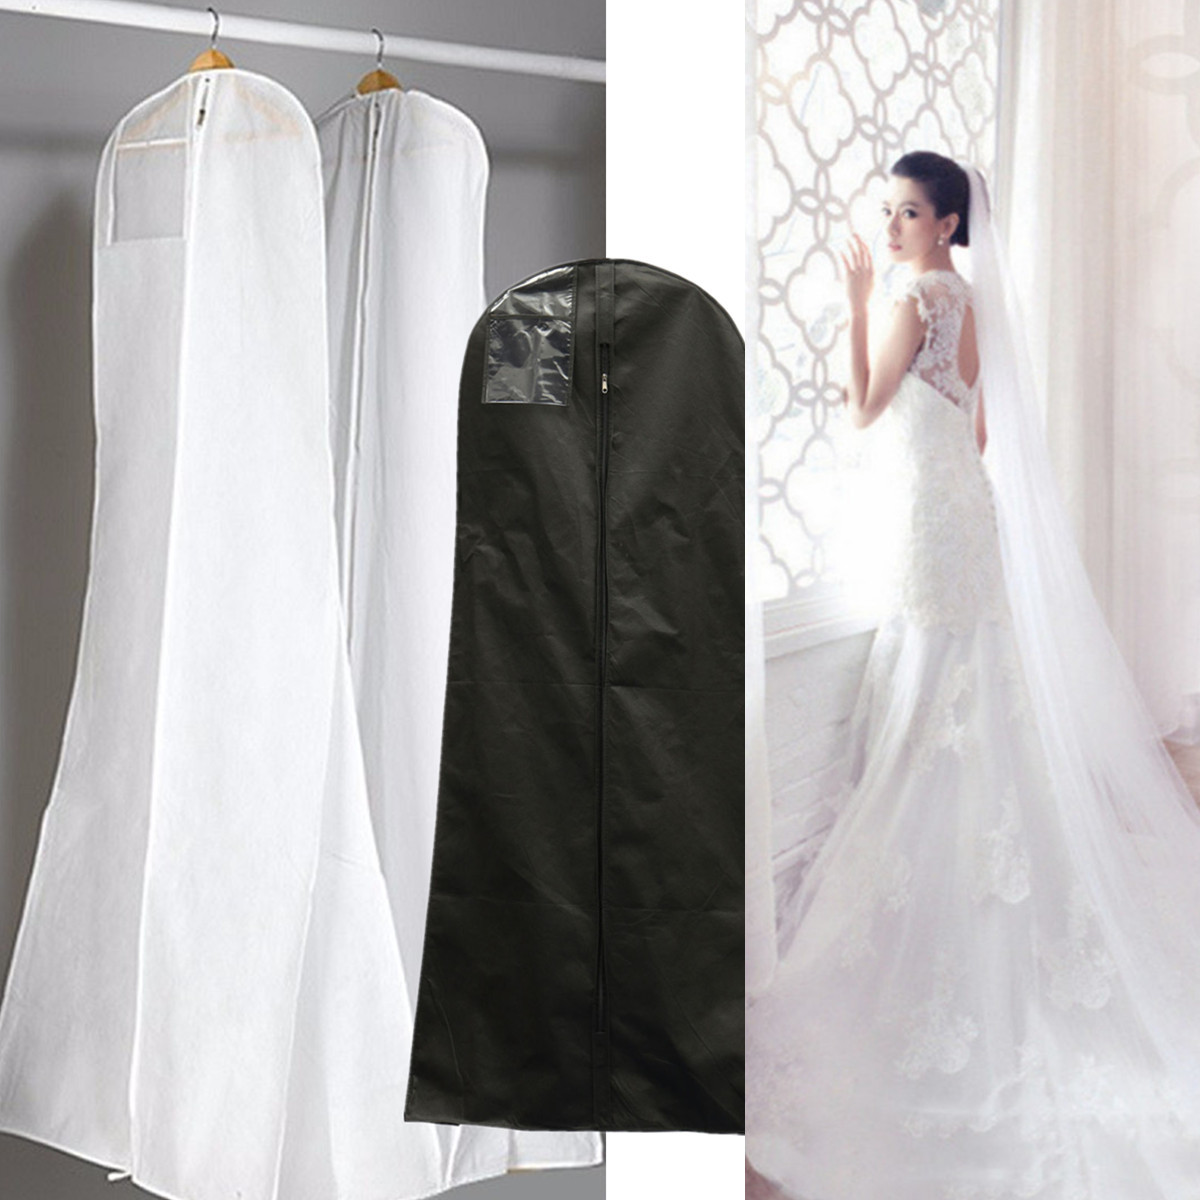 Asewin 2 Size Wedding Dress Bridal Gown Garment Dustproof Breathable Cover Storage Bag